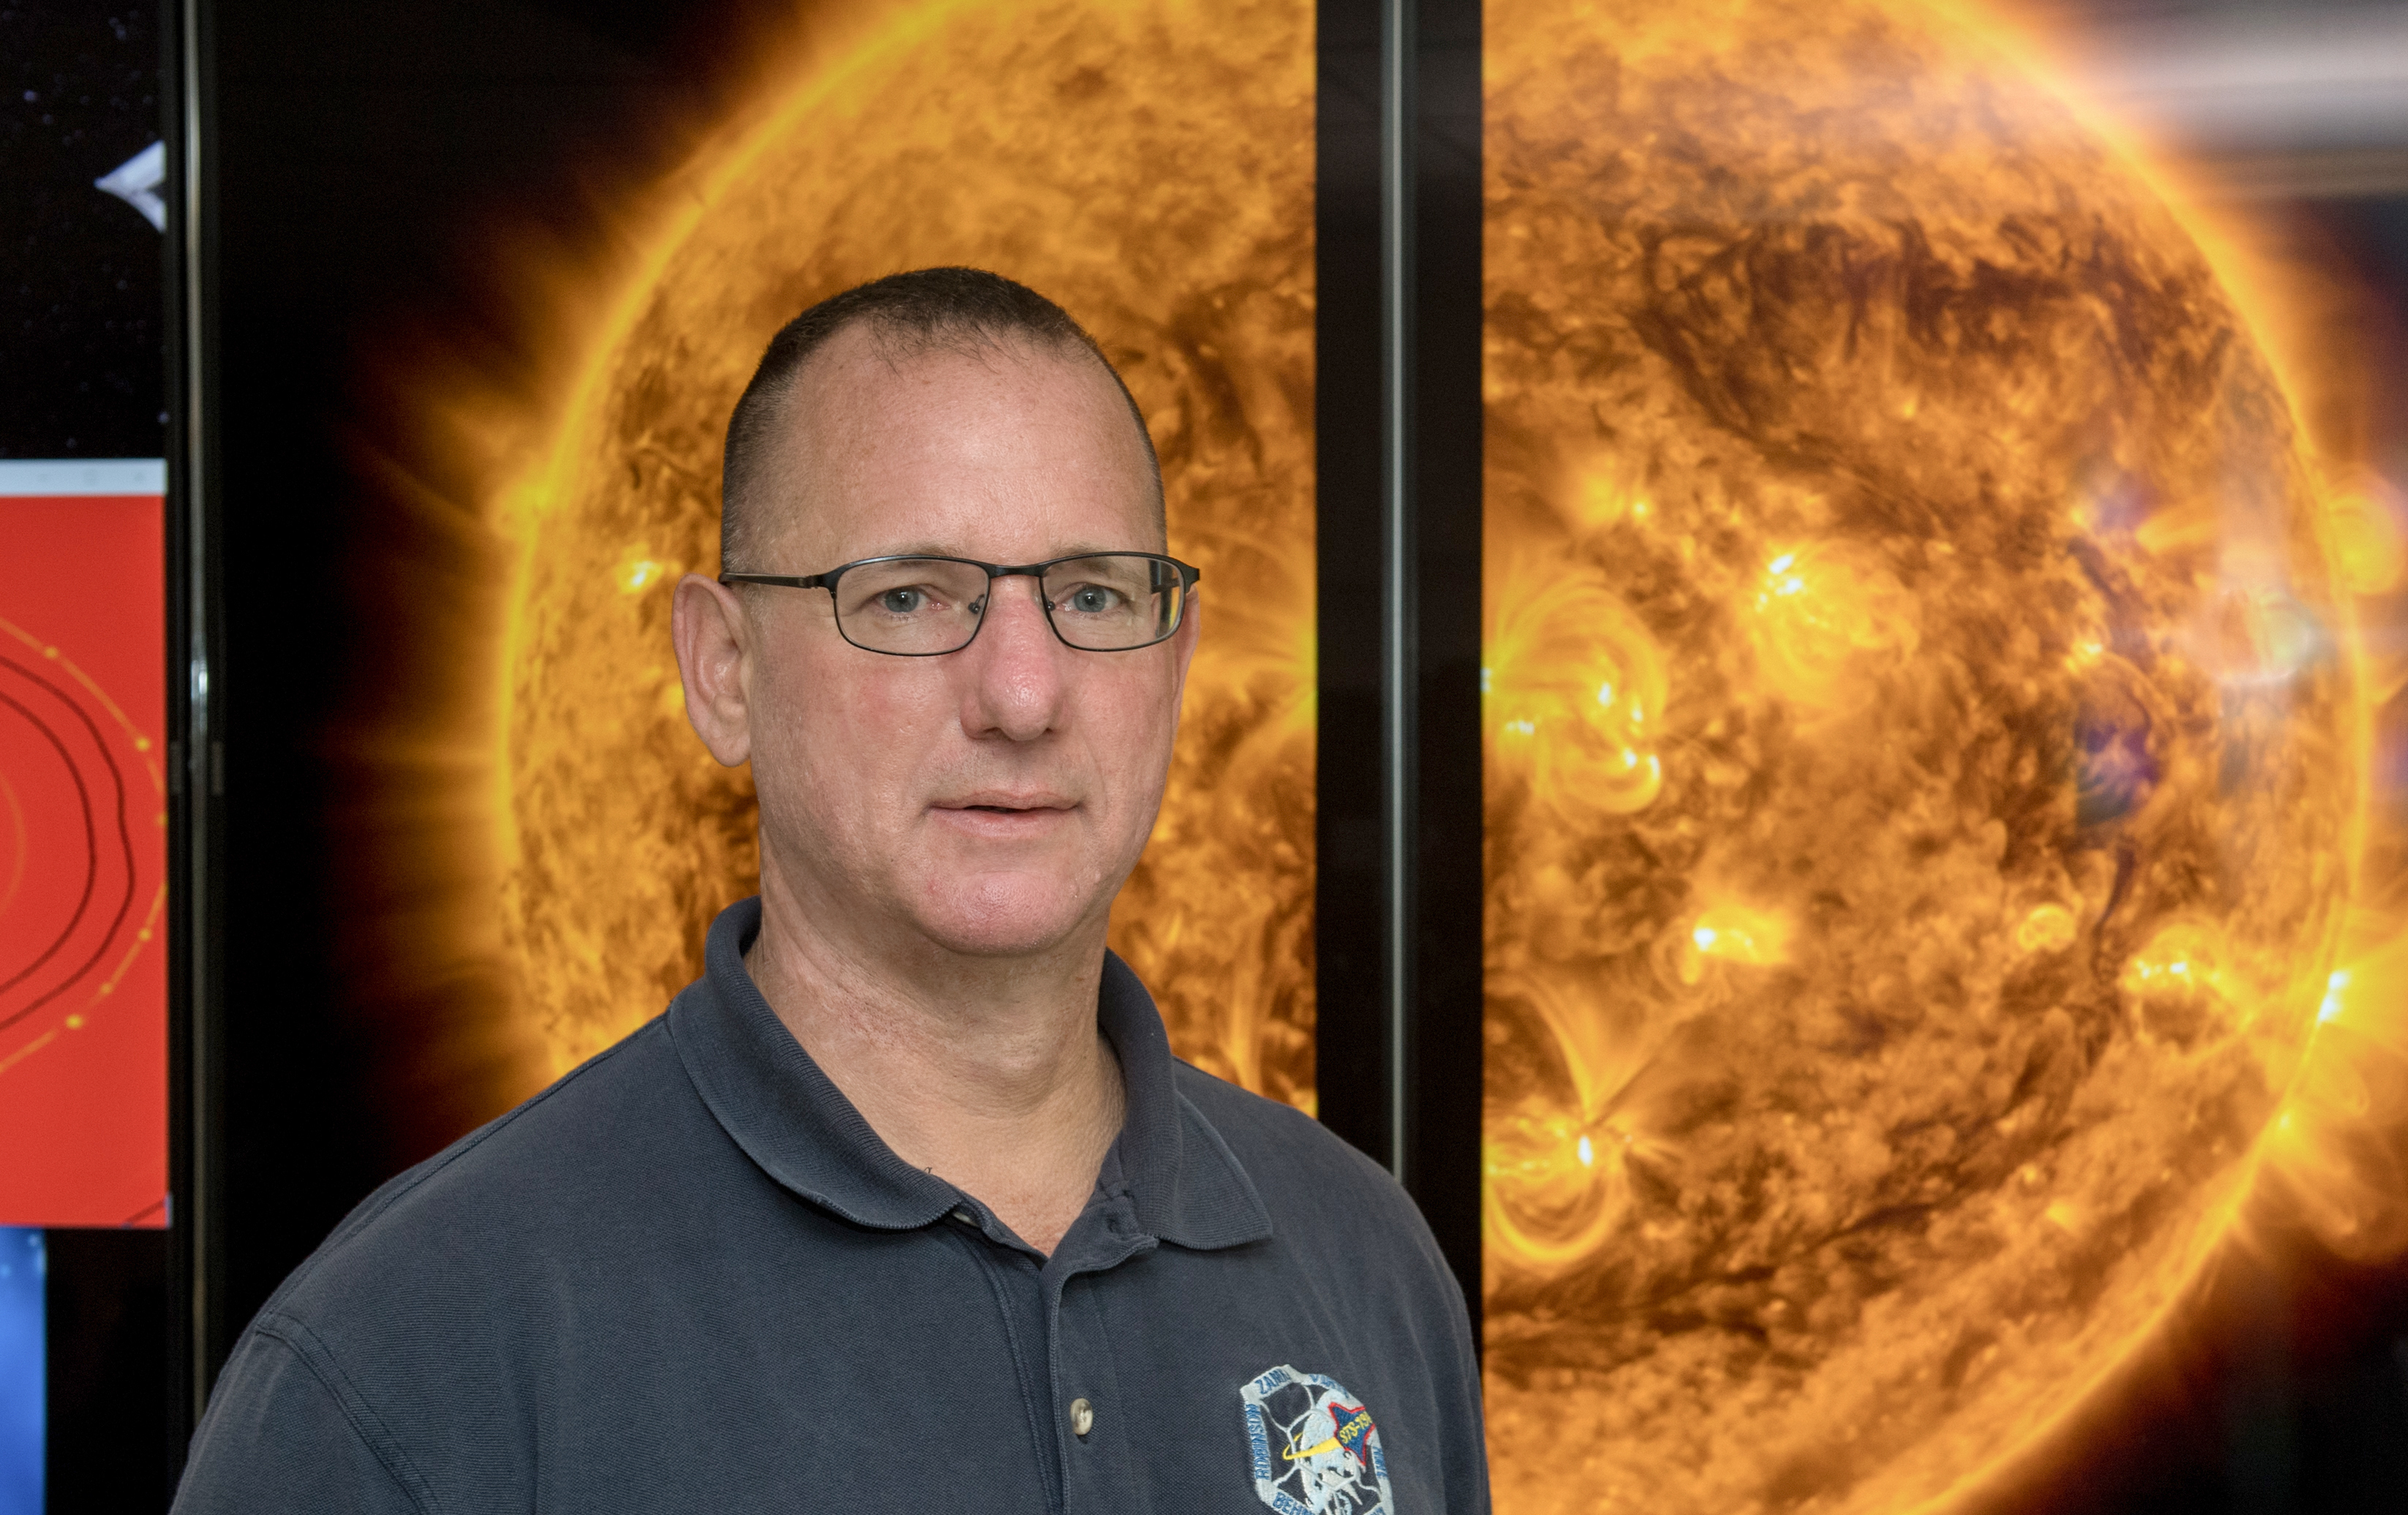 Photo of Peter Schuck in front of an image of the sun